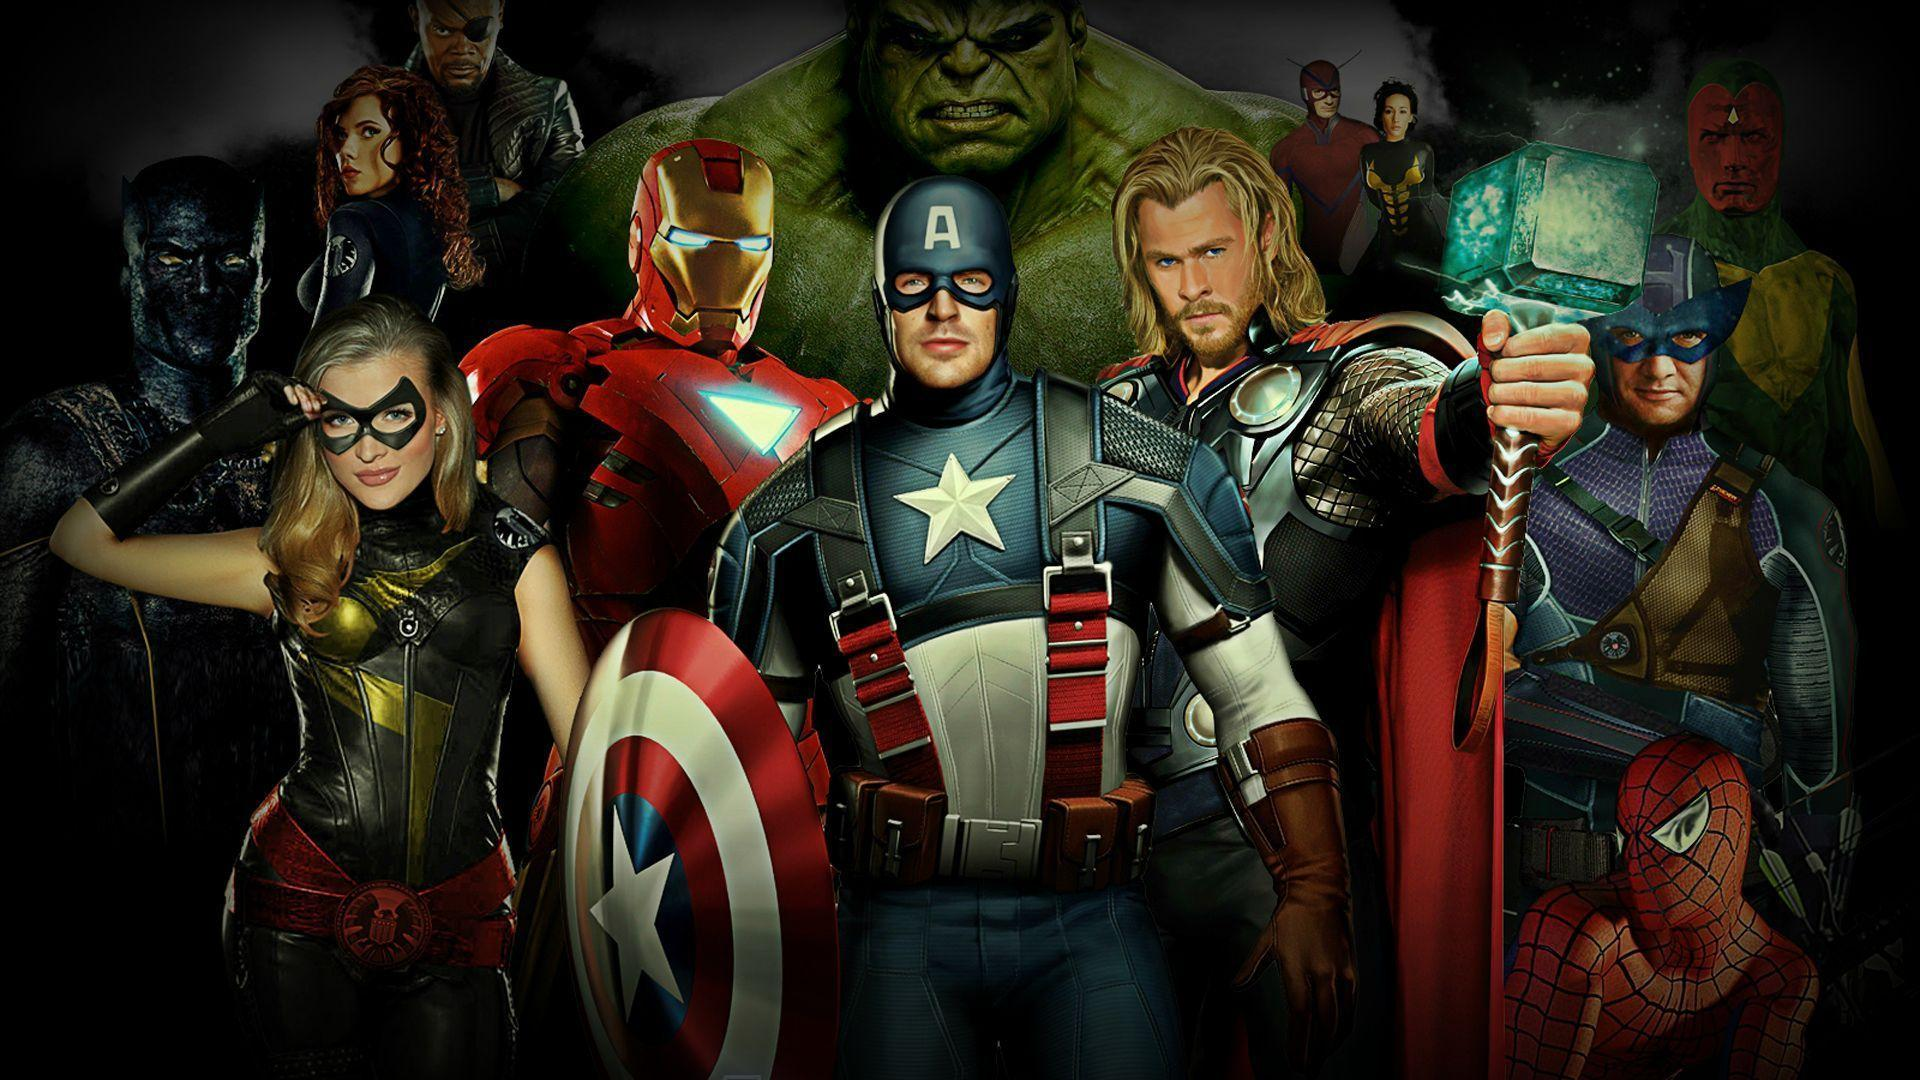 marvel heroes wallpapers hd - wallpaper cave